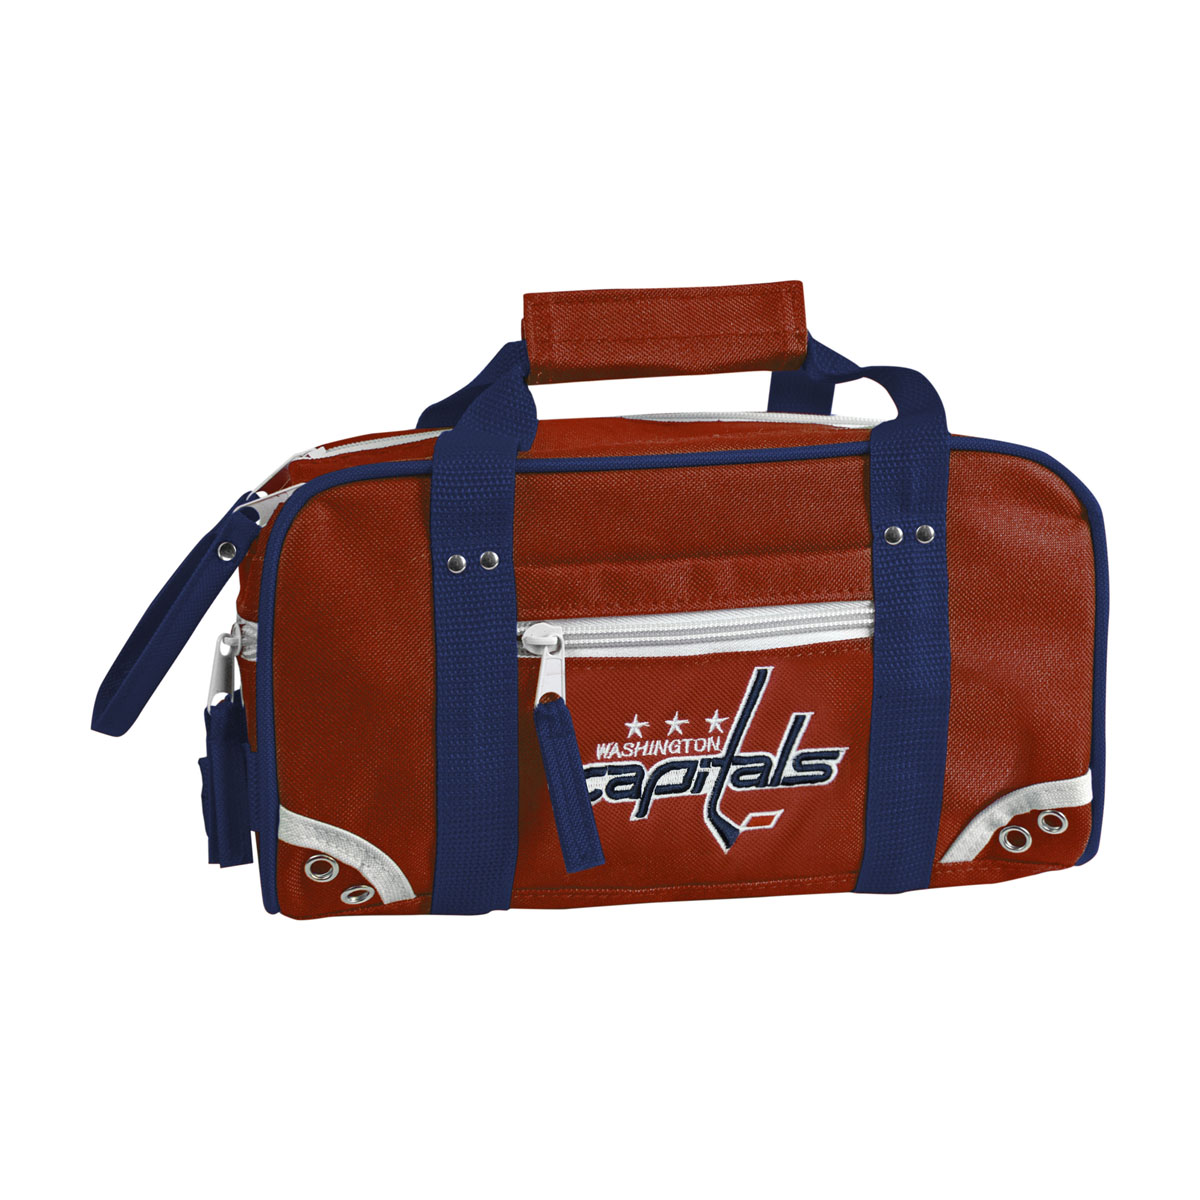 "Мини-баул Atributika & Club ""NHL Washington Capitals"", цвет: красно-синий, 5 л"